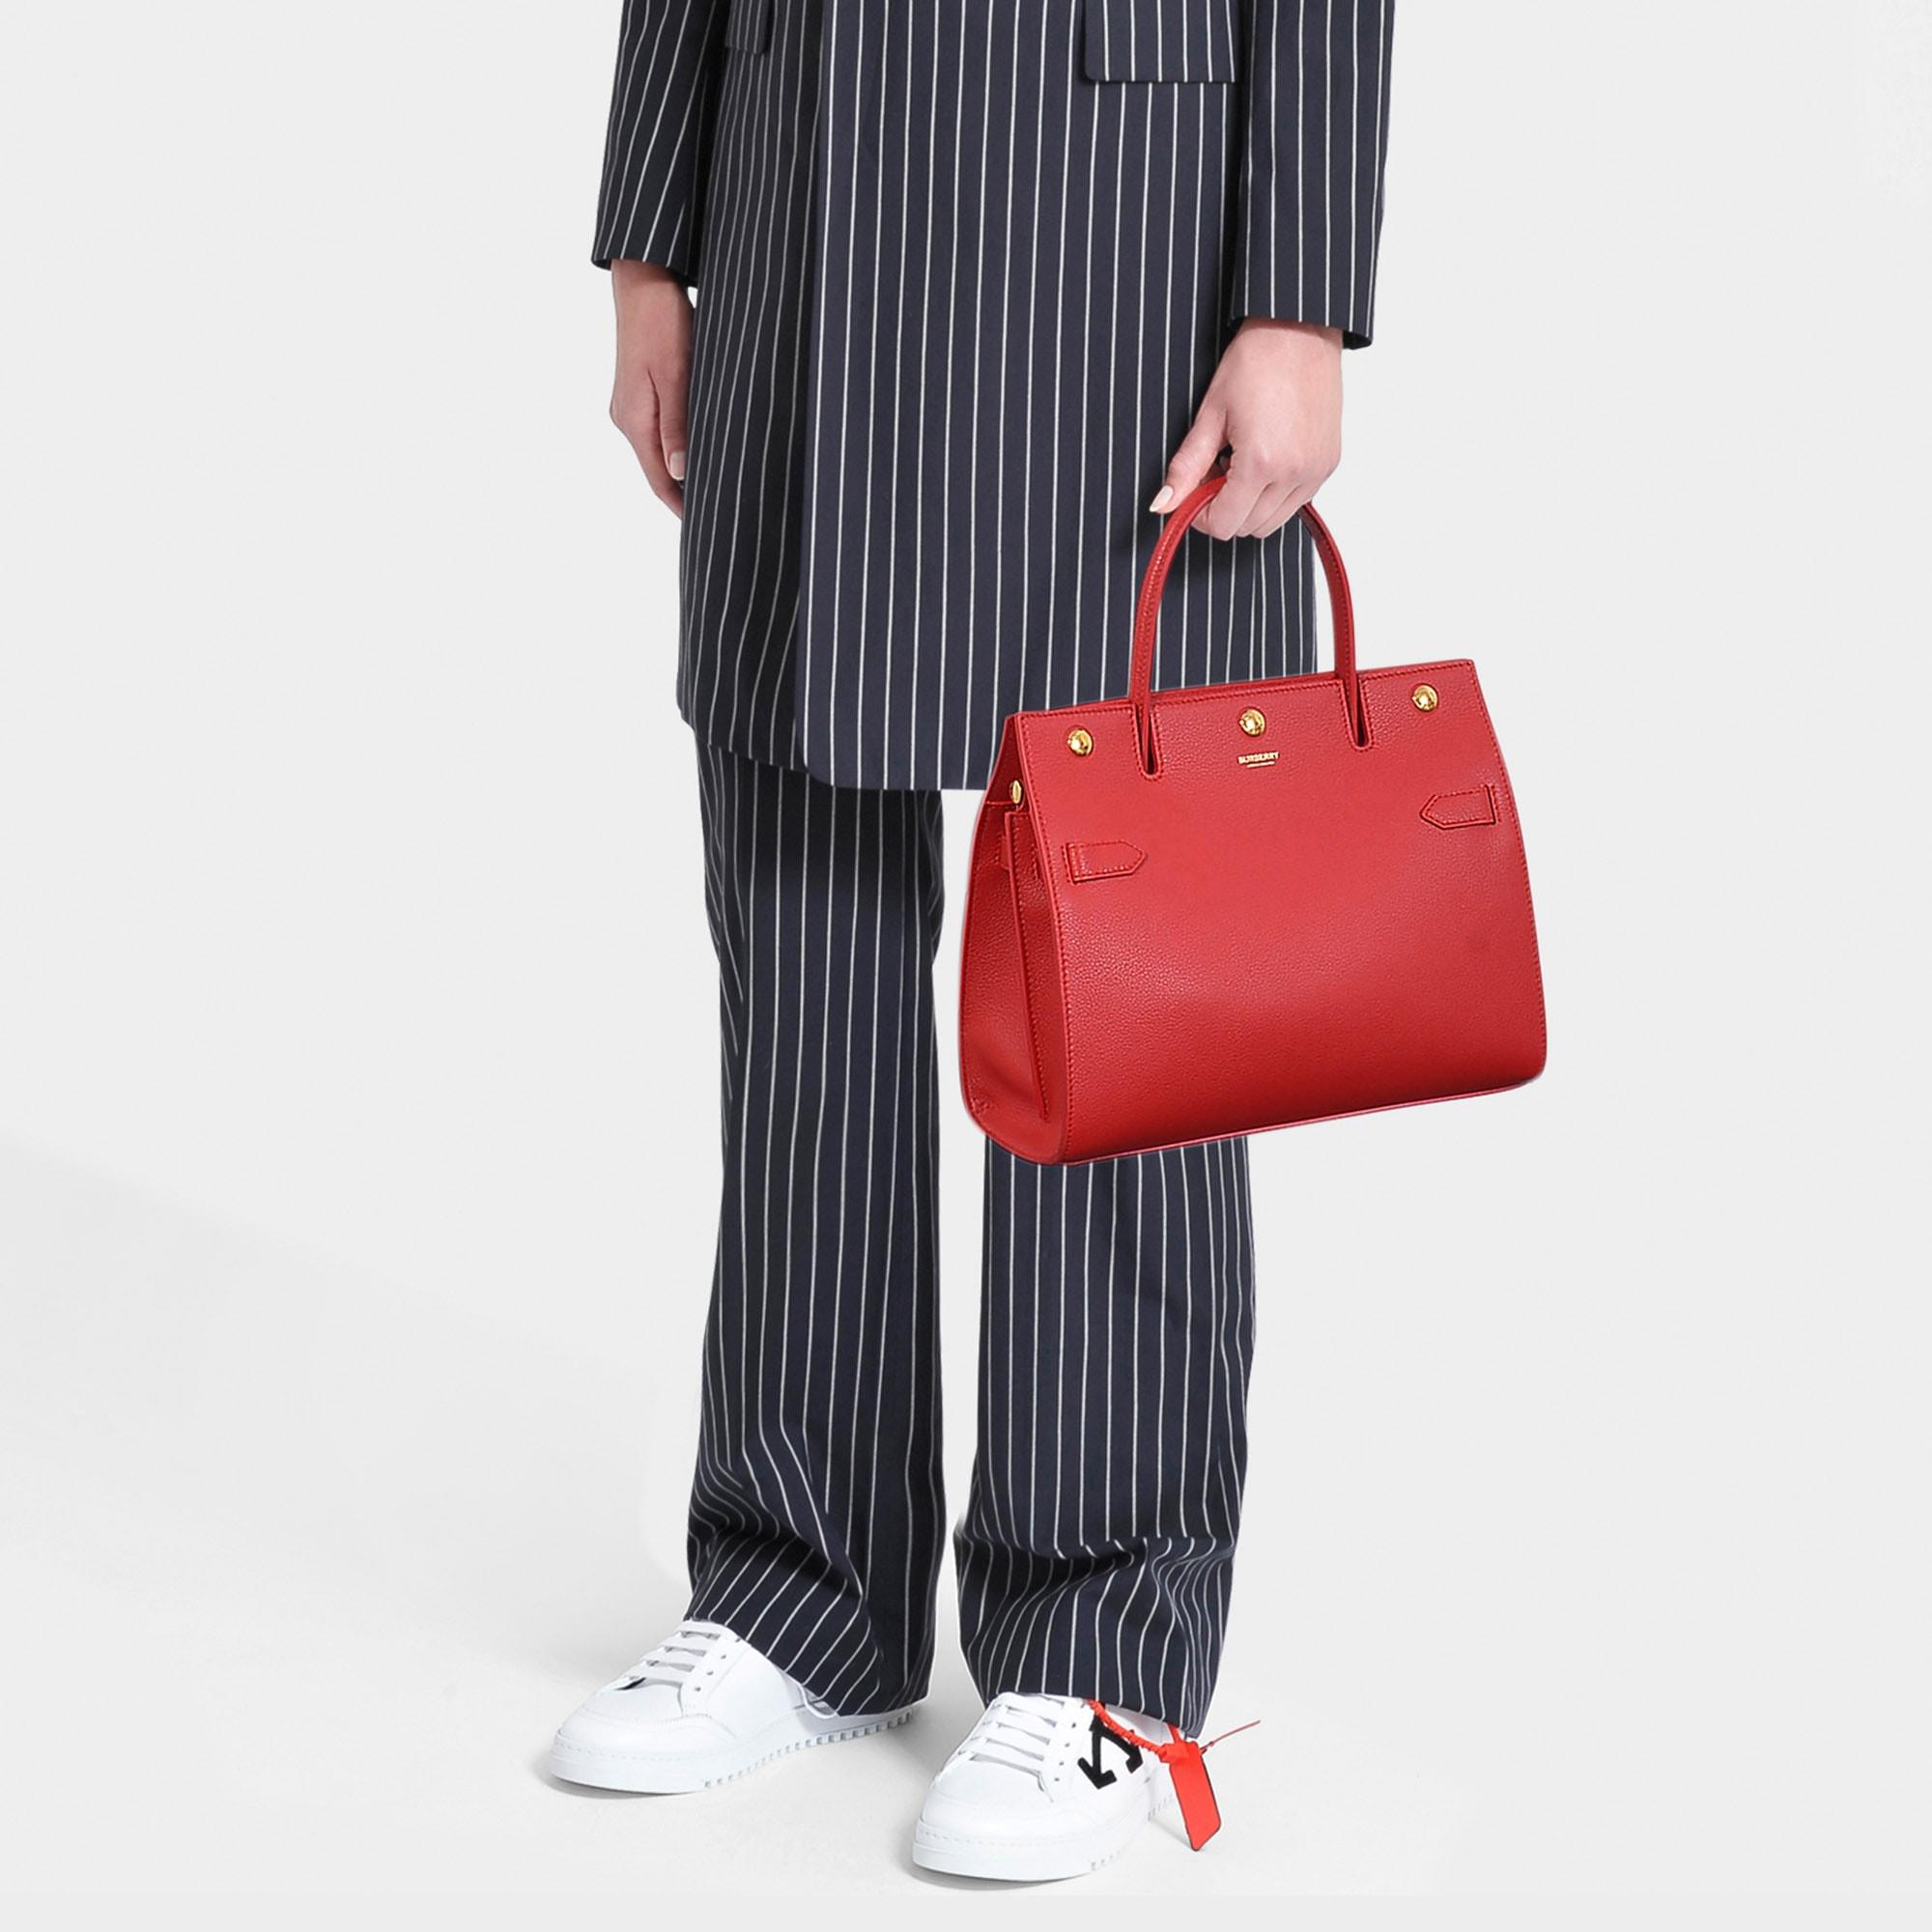 Burberry Small Bar Leather Tote Bag in Black (Red) - Save 47% - Lyst